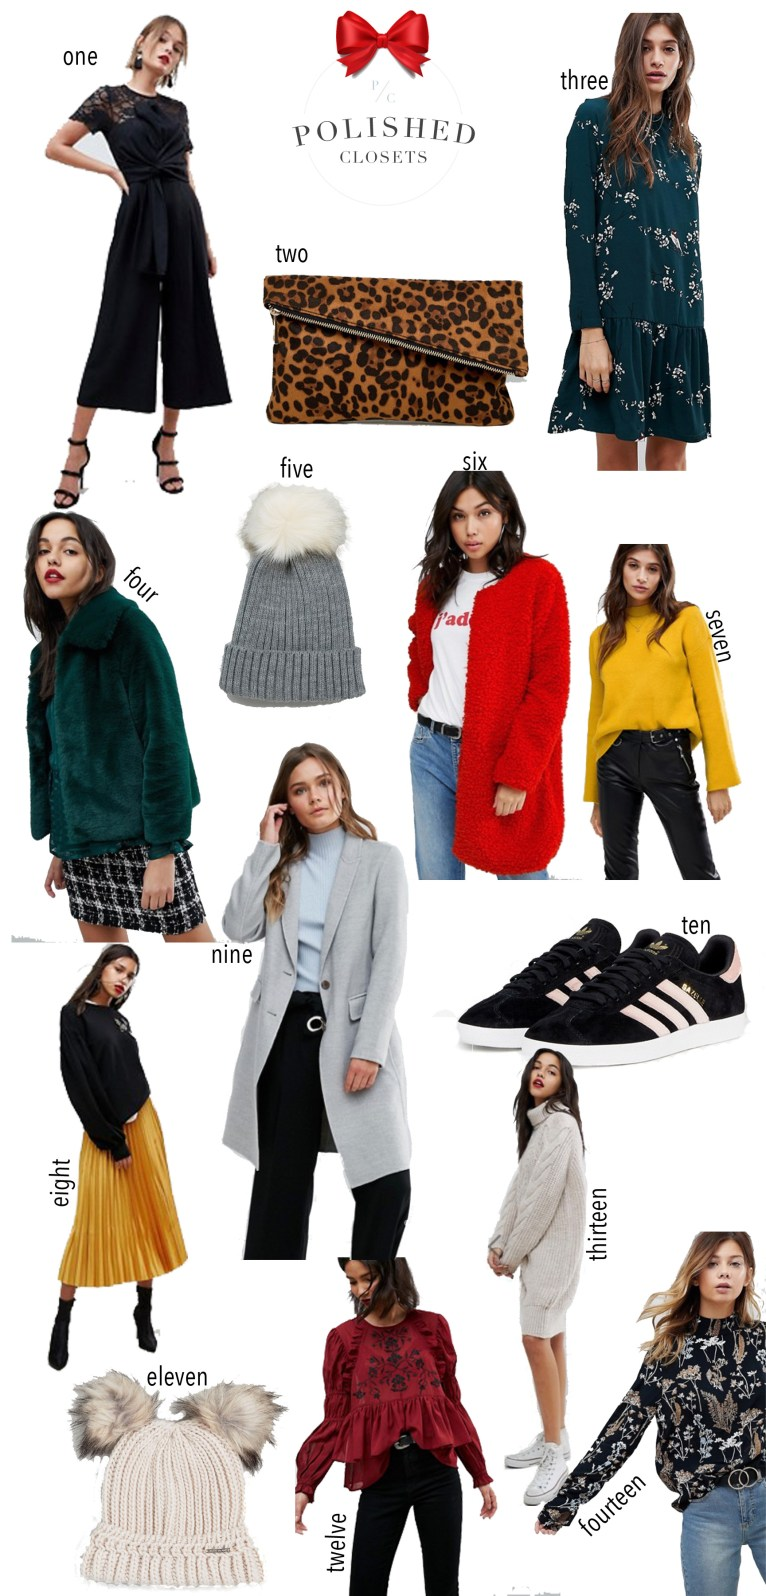 The best Black Friday sales picks from ASOS by fashion blogger Maggie Kern of Polished Closets.